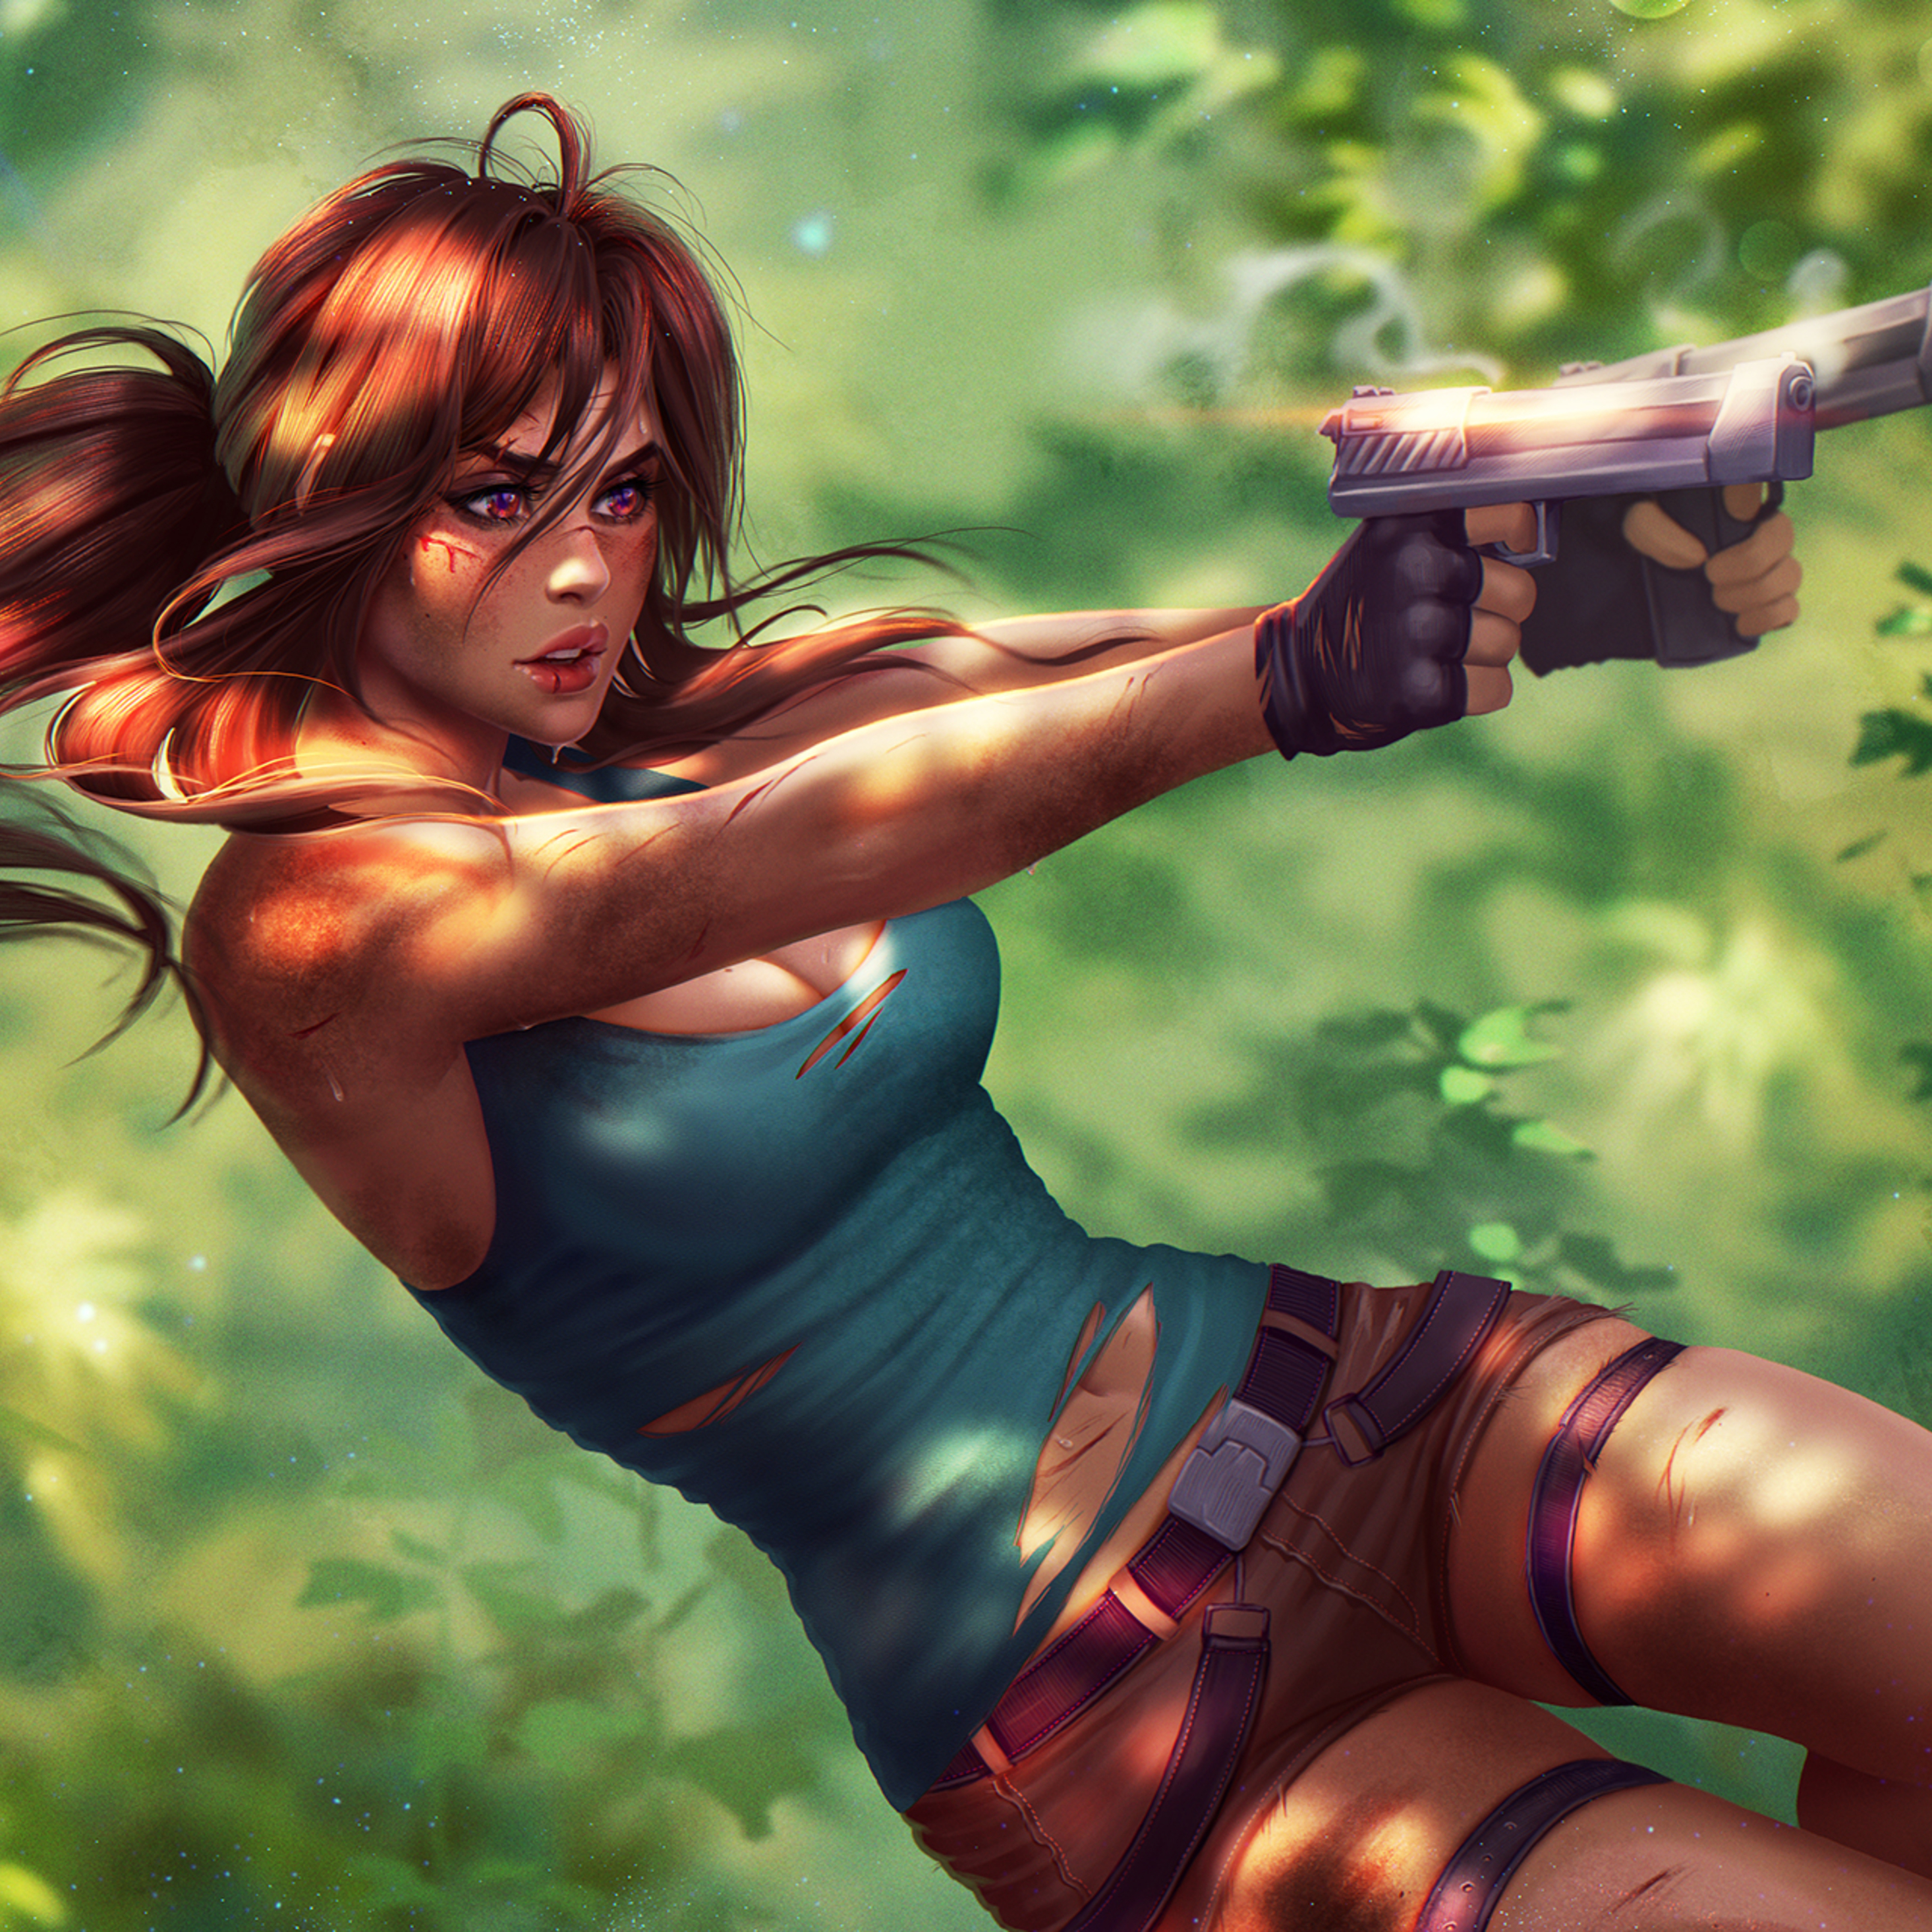 Tomb Rider Wallpaper: 2932x2932 Lara Croft Tomb Raider Fanart Ipad Pro Retina